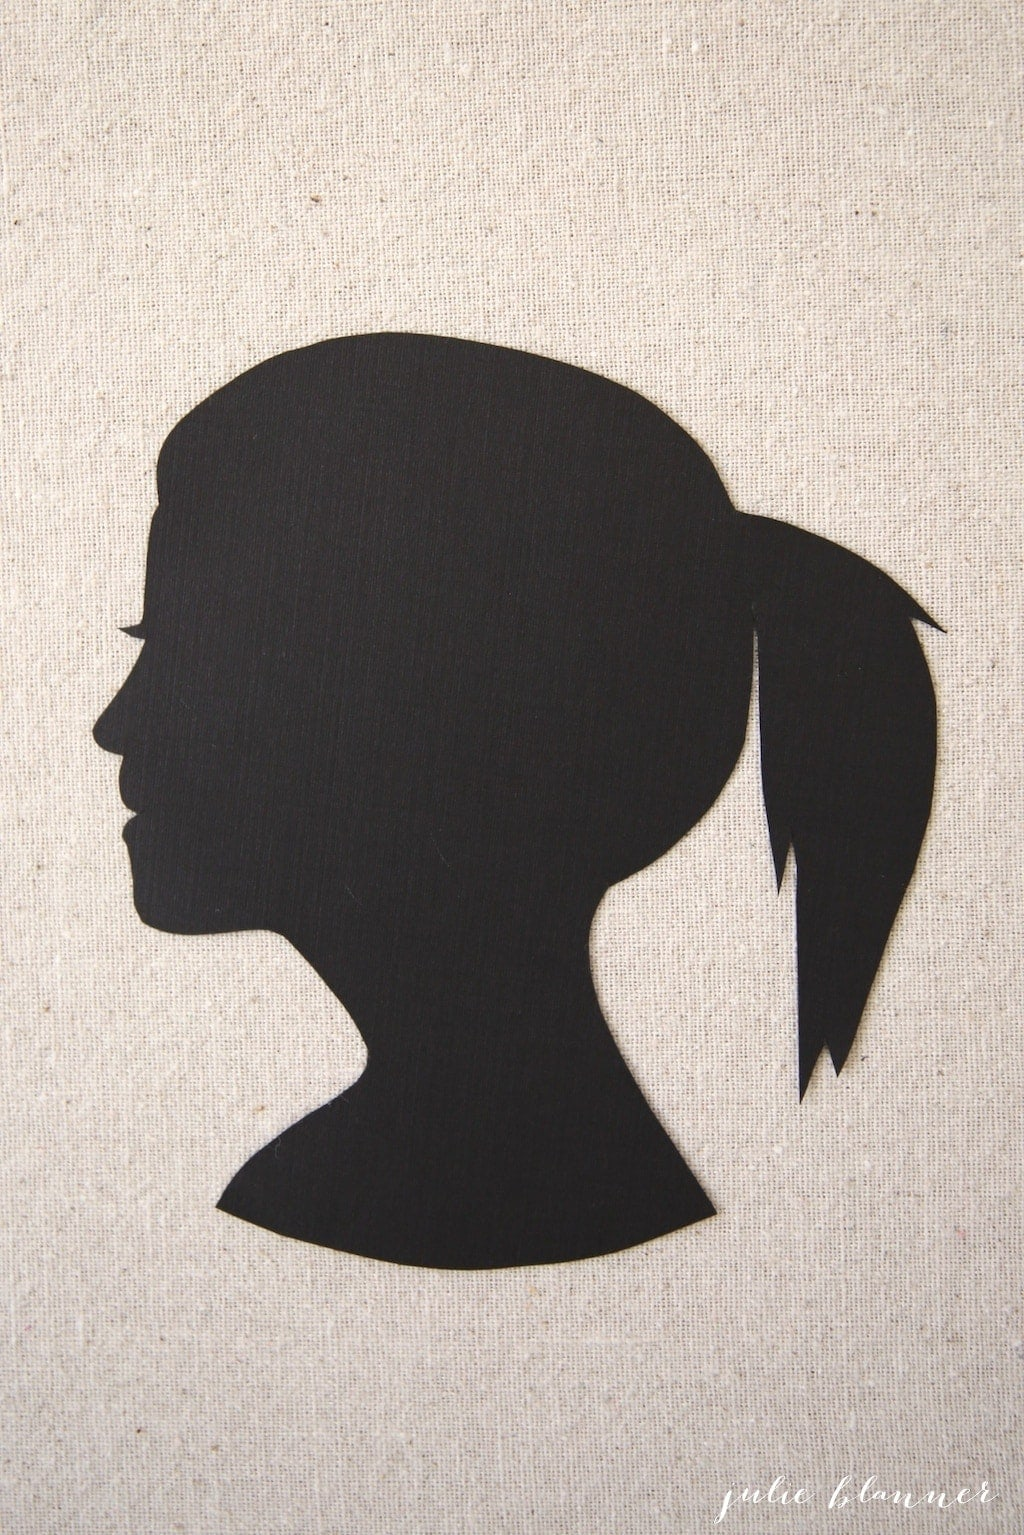 How To Make A Silhouette Portrait